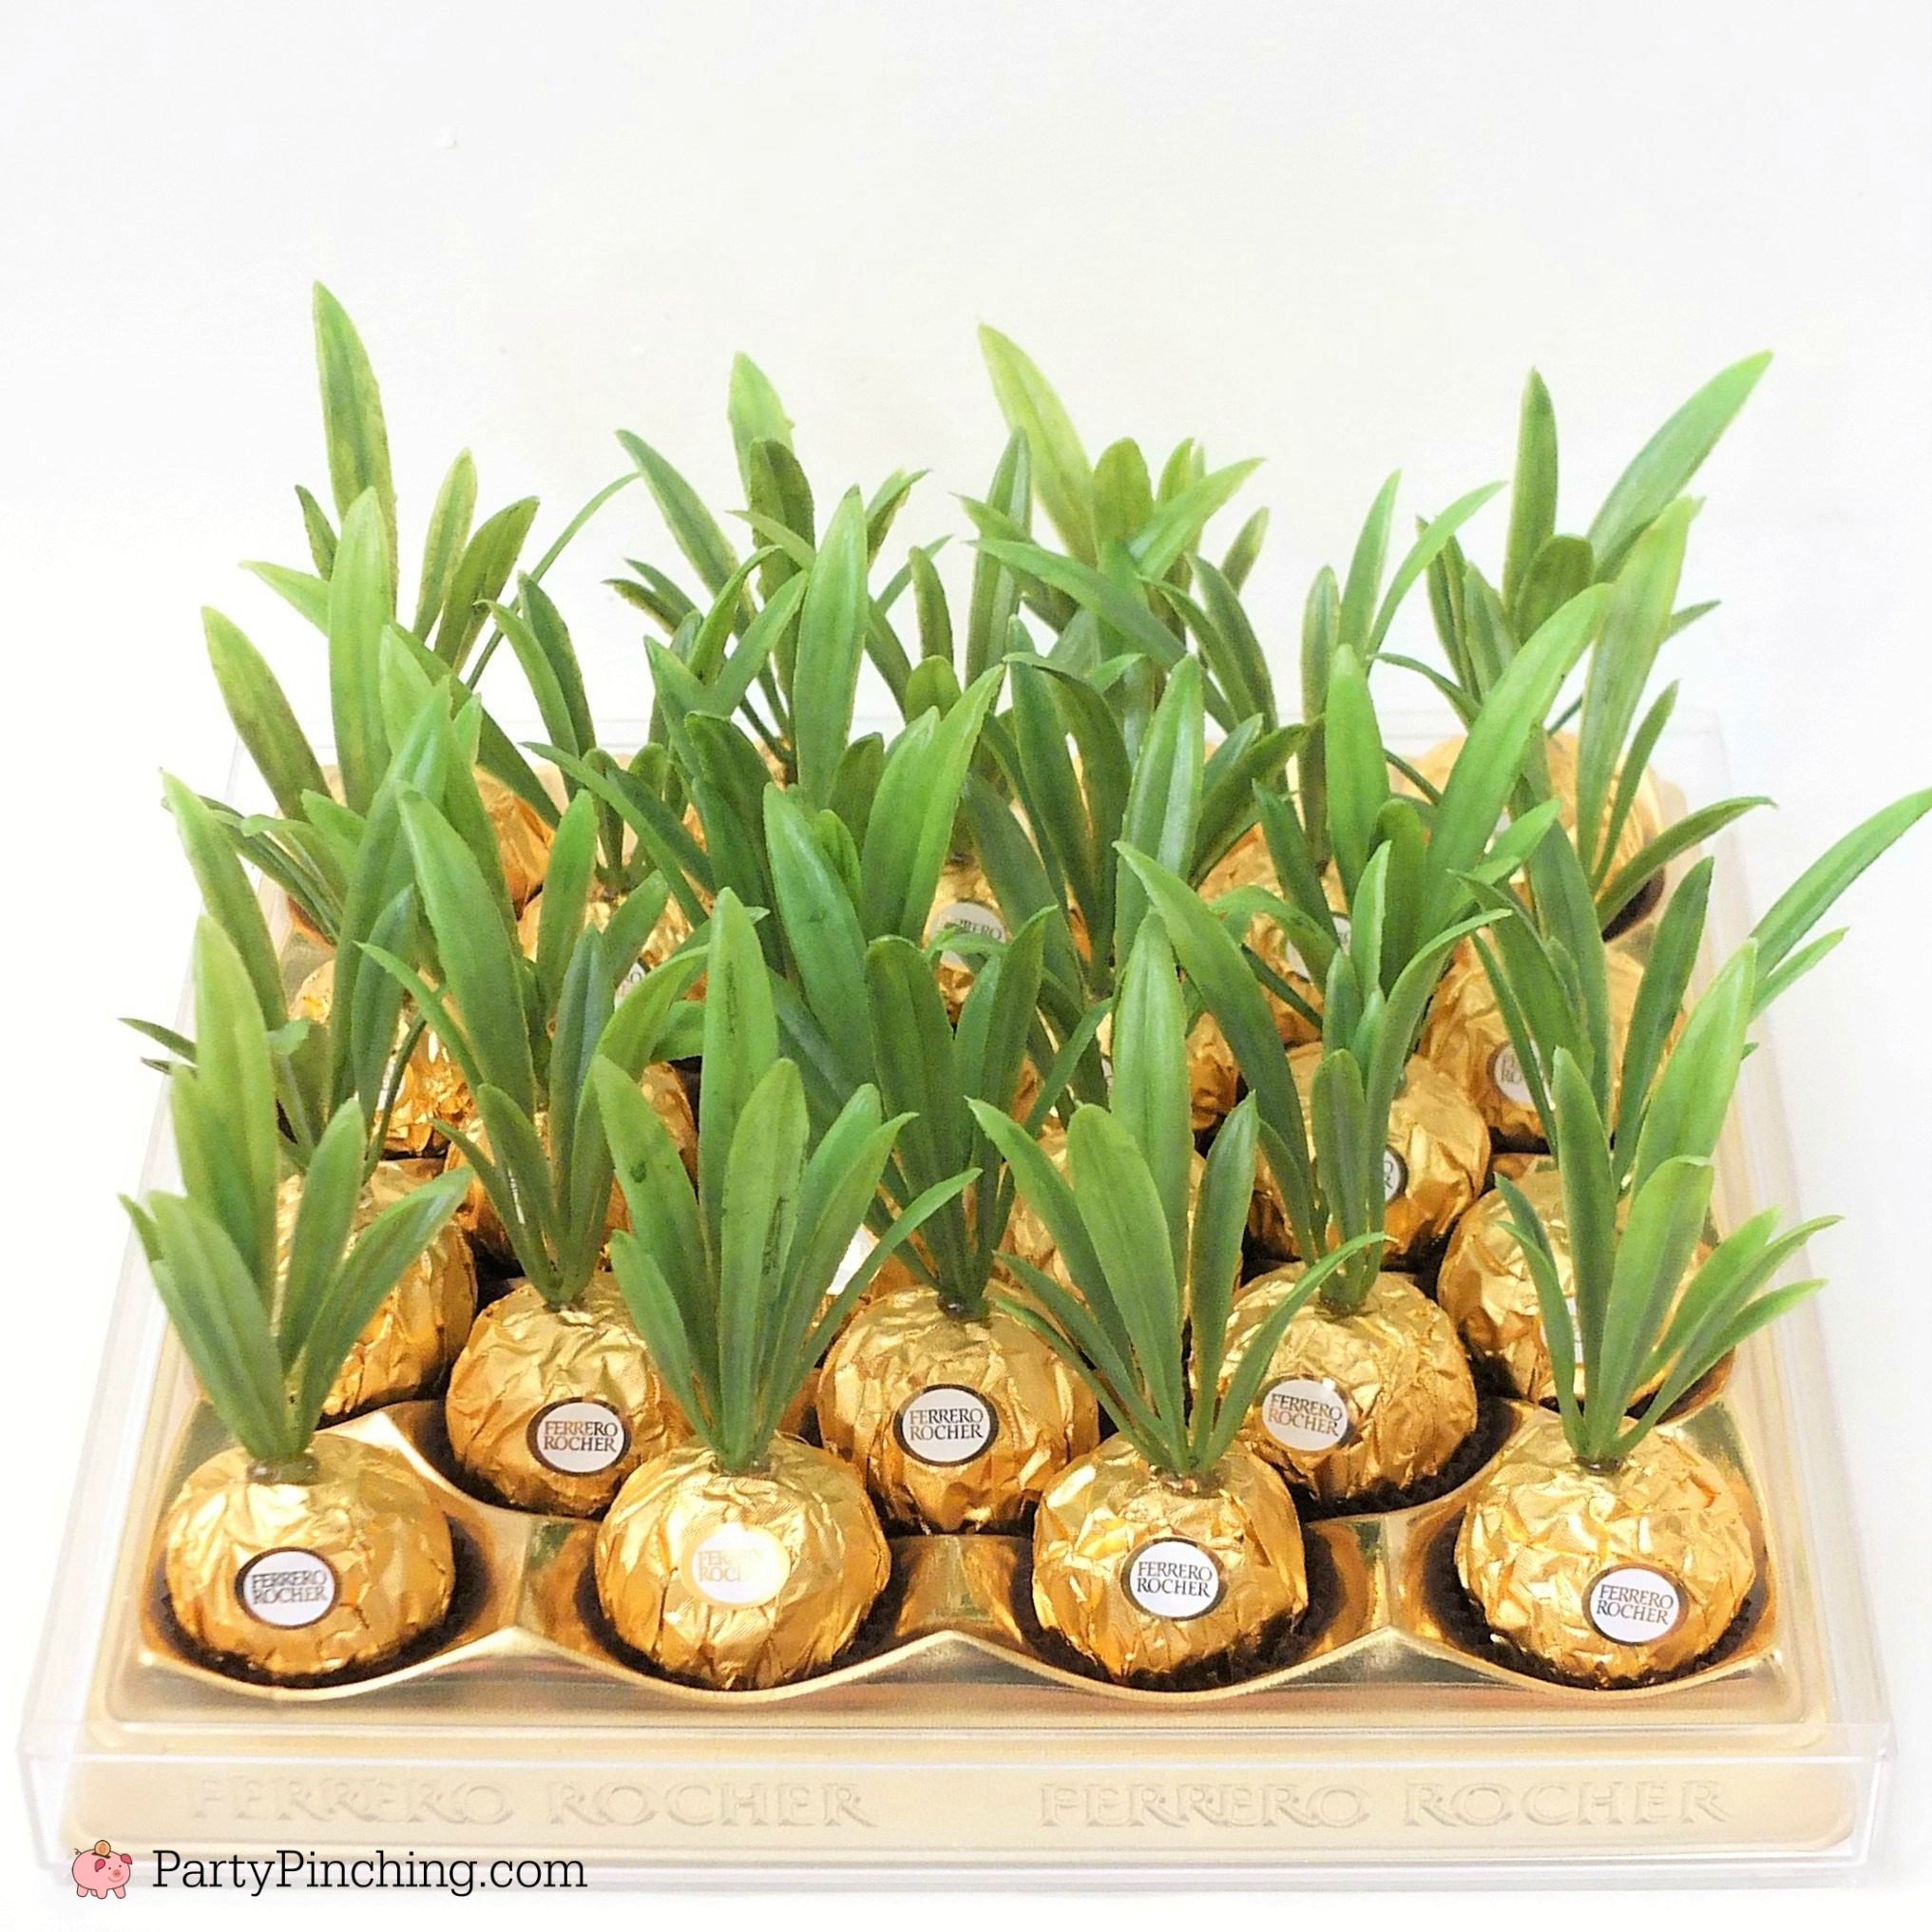 Ferrero Rocher pineapples, cute pineapple candy, pineapple party favor, Hawaiian beach pineapple luau theme party ideas, DIY pineapple candy favor